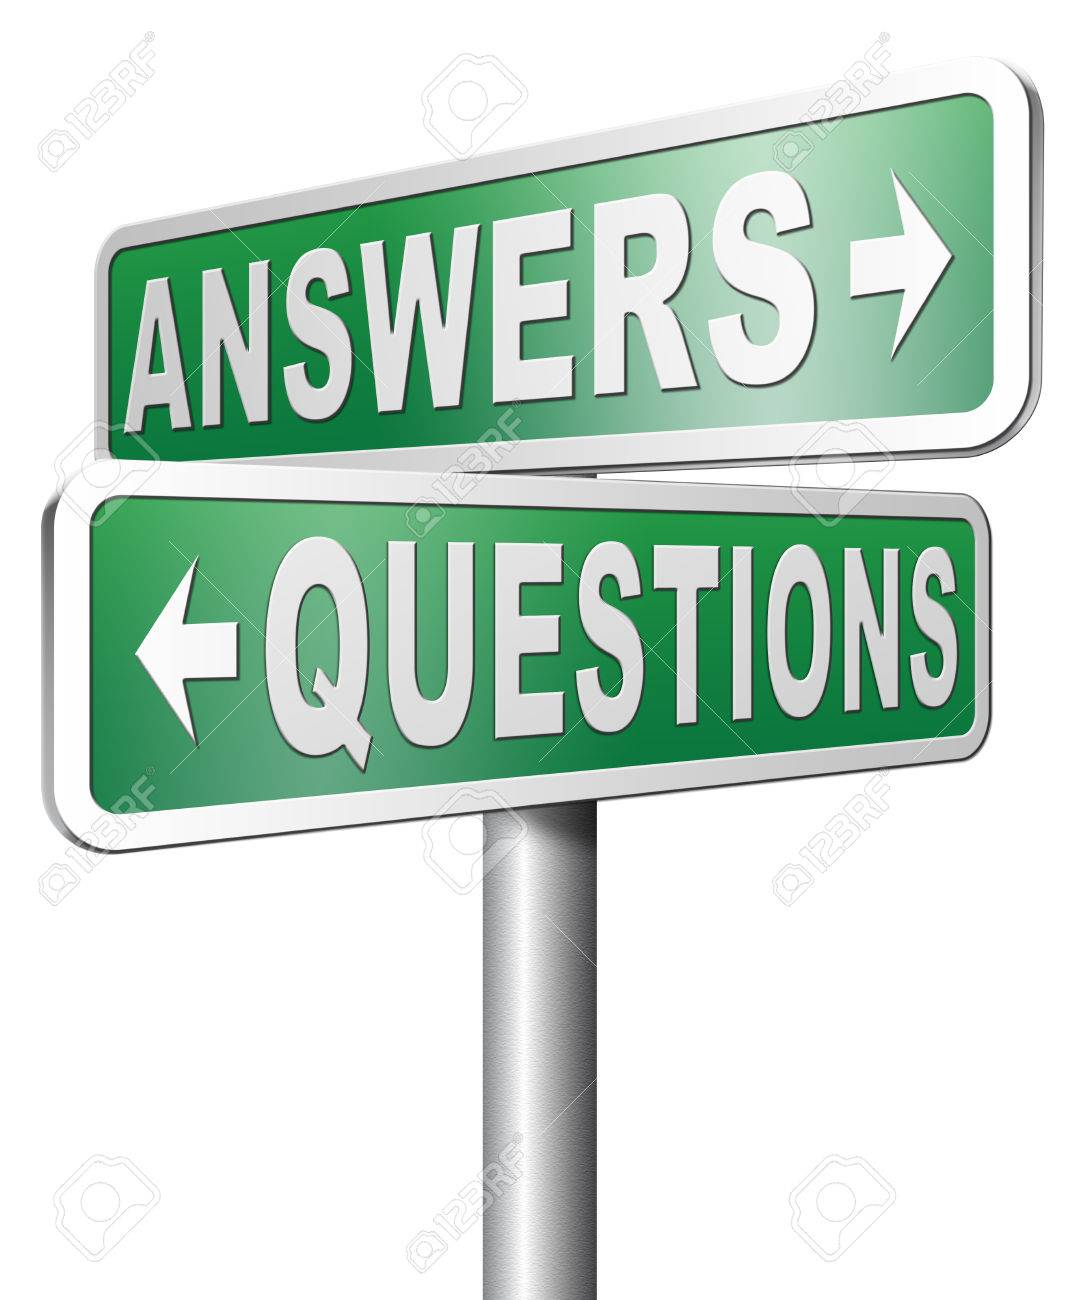 question answer ask the right questions and get an answers help stock photo question answer ask the right questions and get an answers help or support desk solving problems and finding solutions